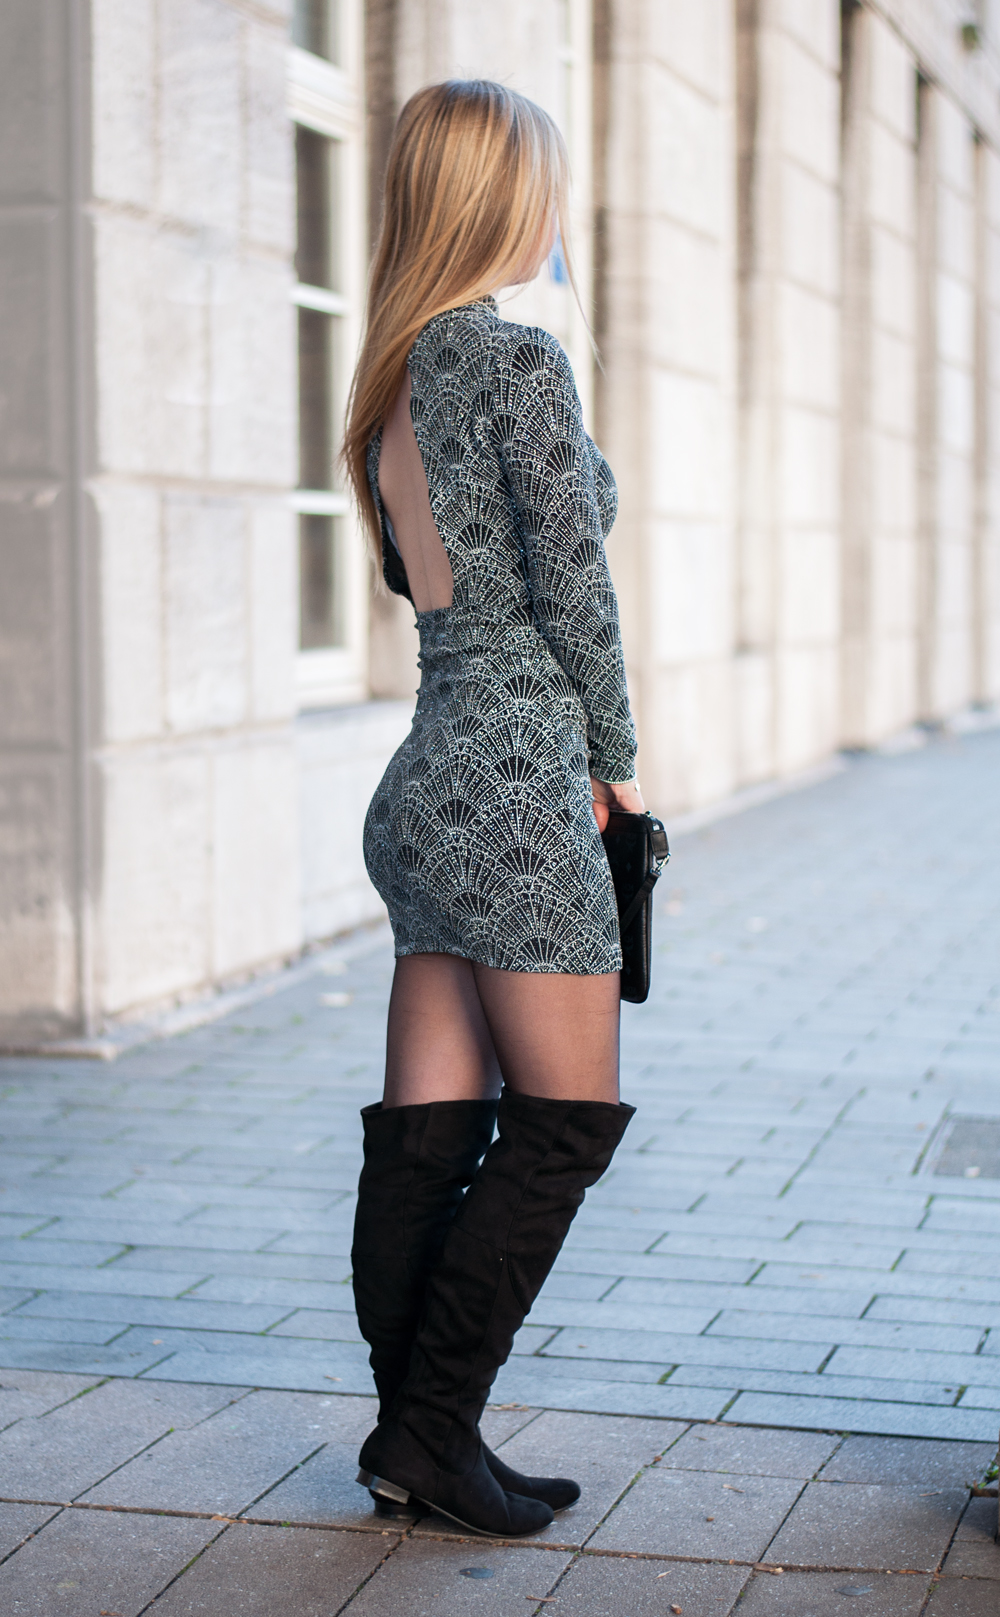 bodycon-dress-christmas-outfit-xmas-look-inspiration-winter-backless-sequin-glitter-sparke-black-overknees-modeblog-duisburg-nrw-3